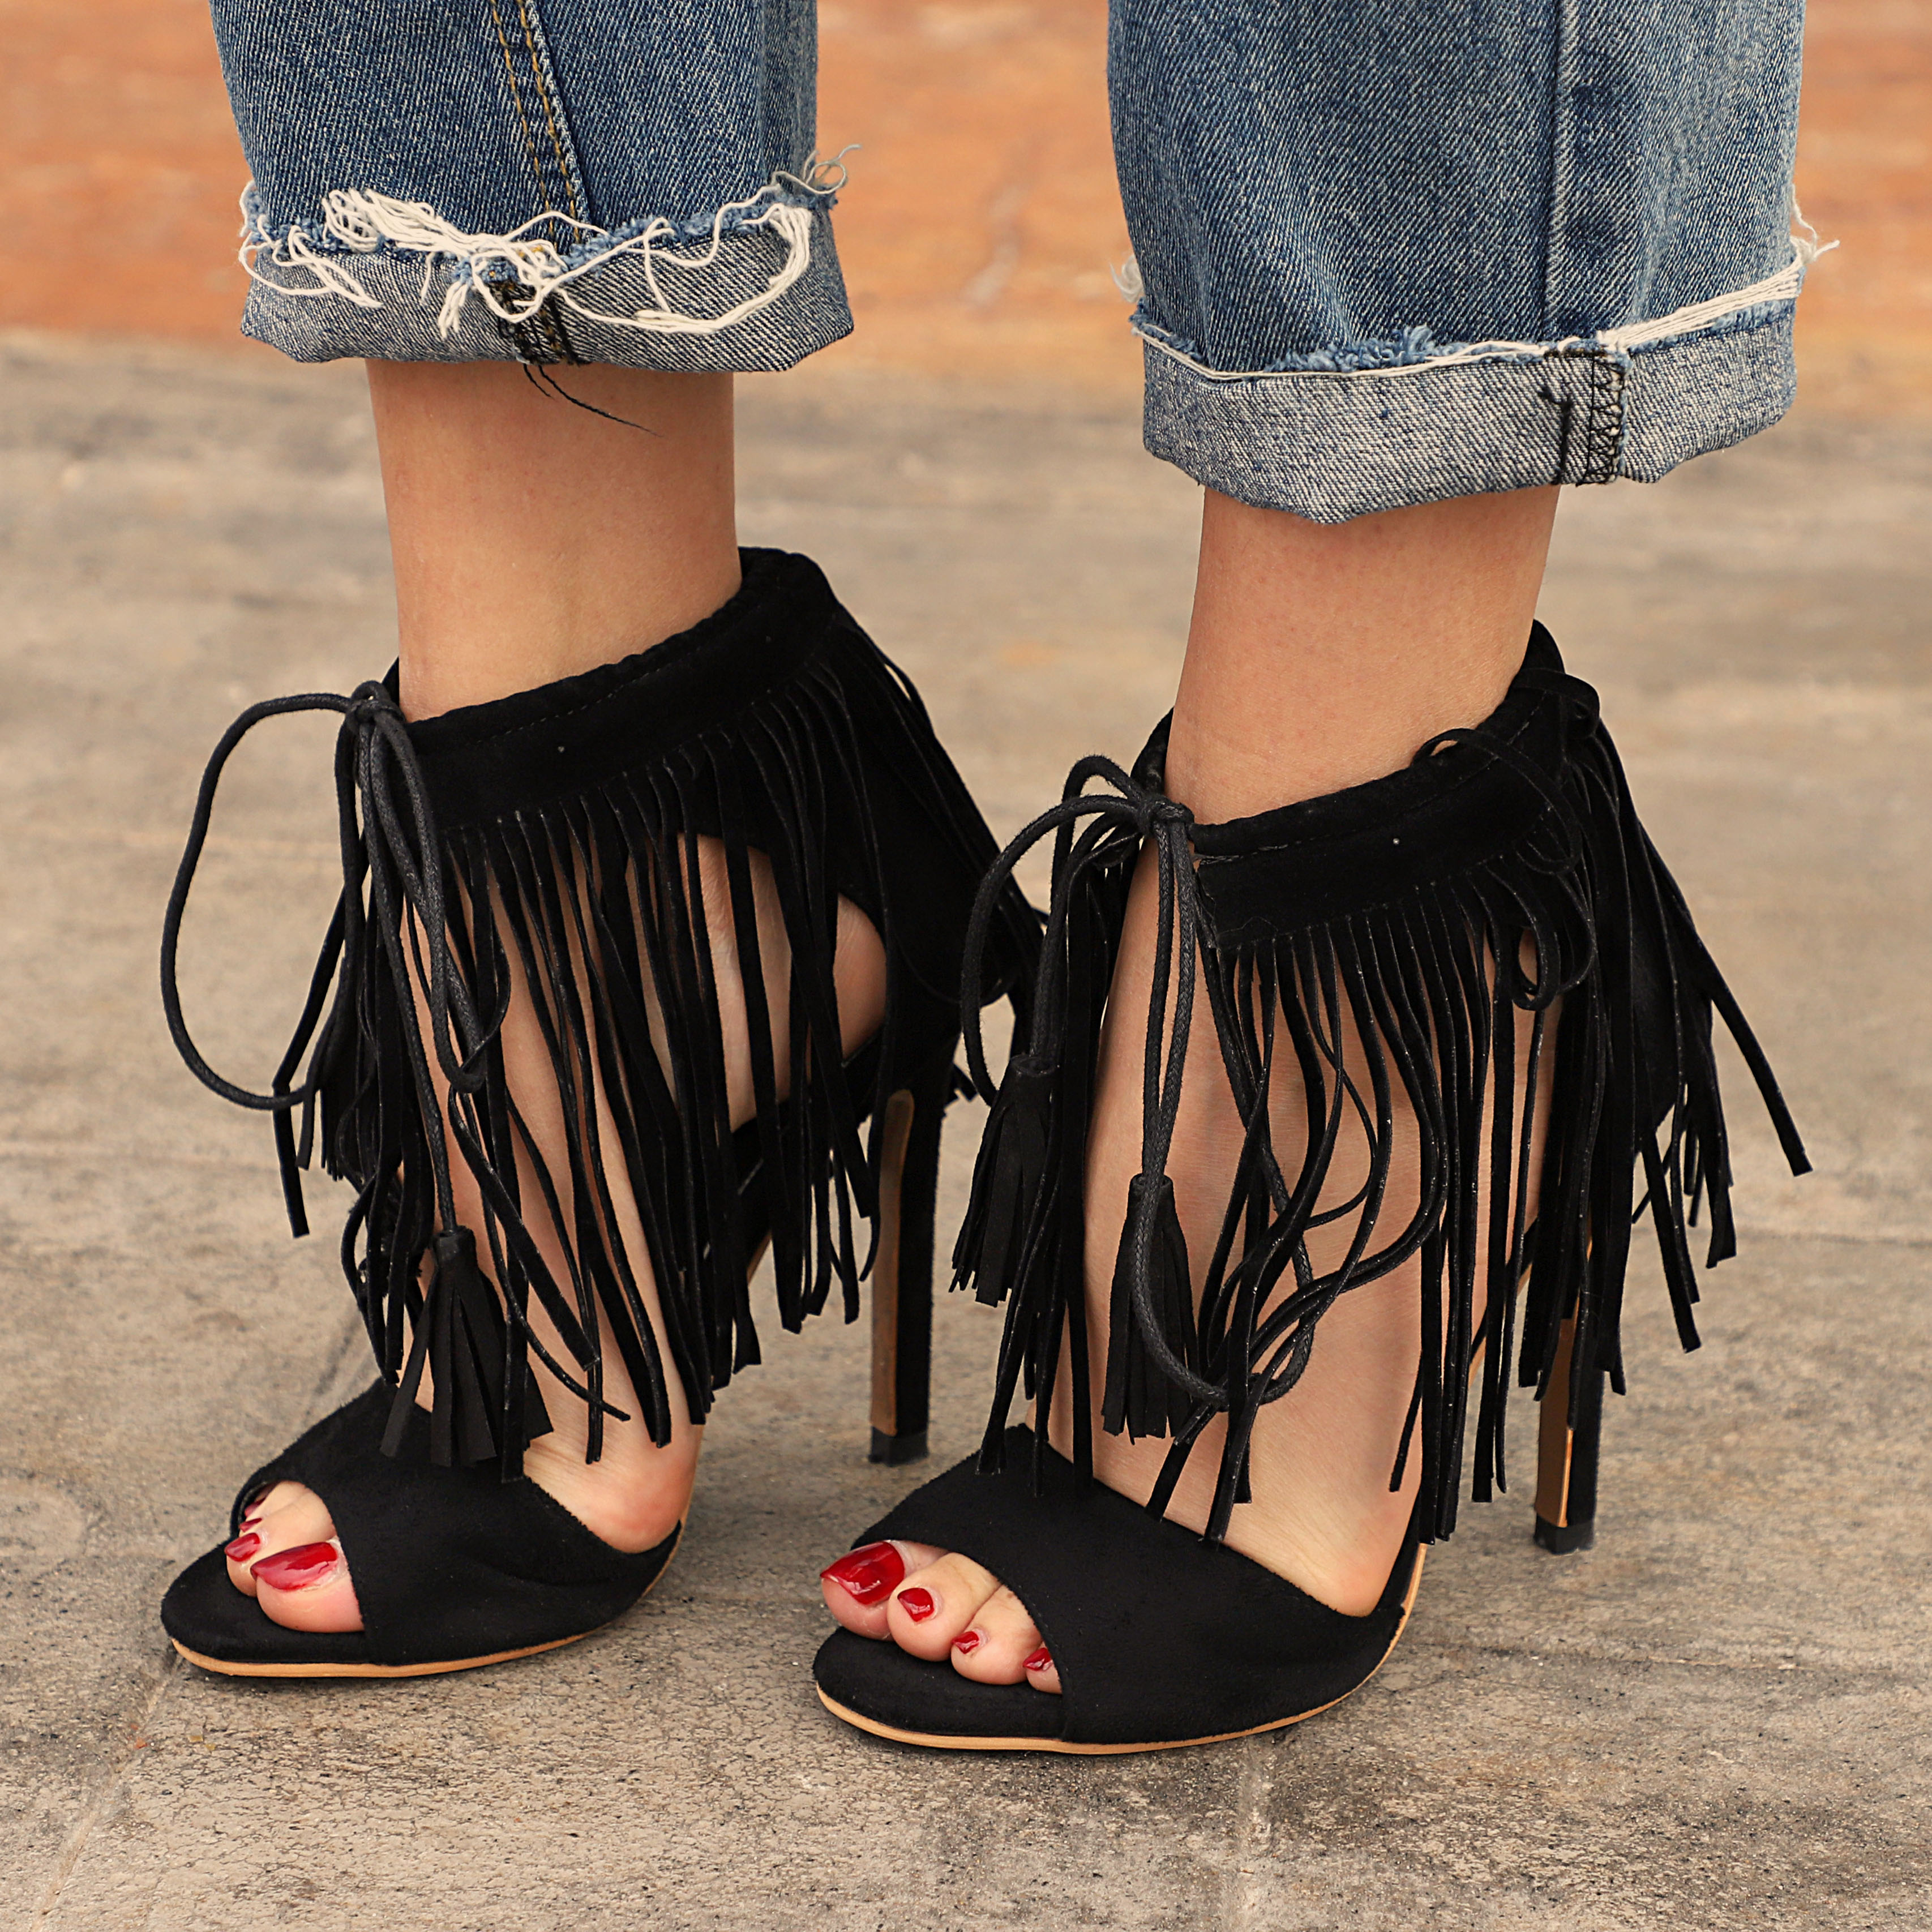 f9fd459a77f Woman Fashion Sexy High Heels Shoes Sandals Lace-up Tide Tassel Shoes from  Eoooh❣❣